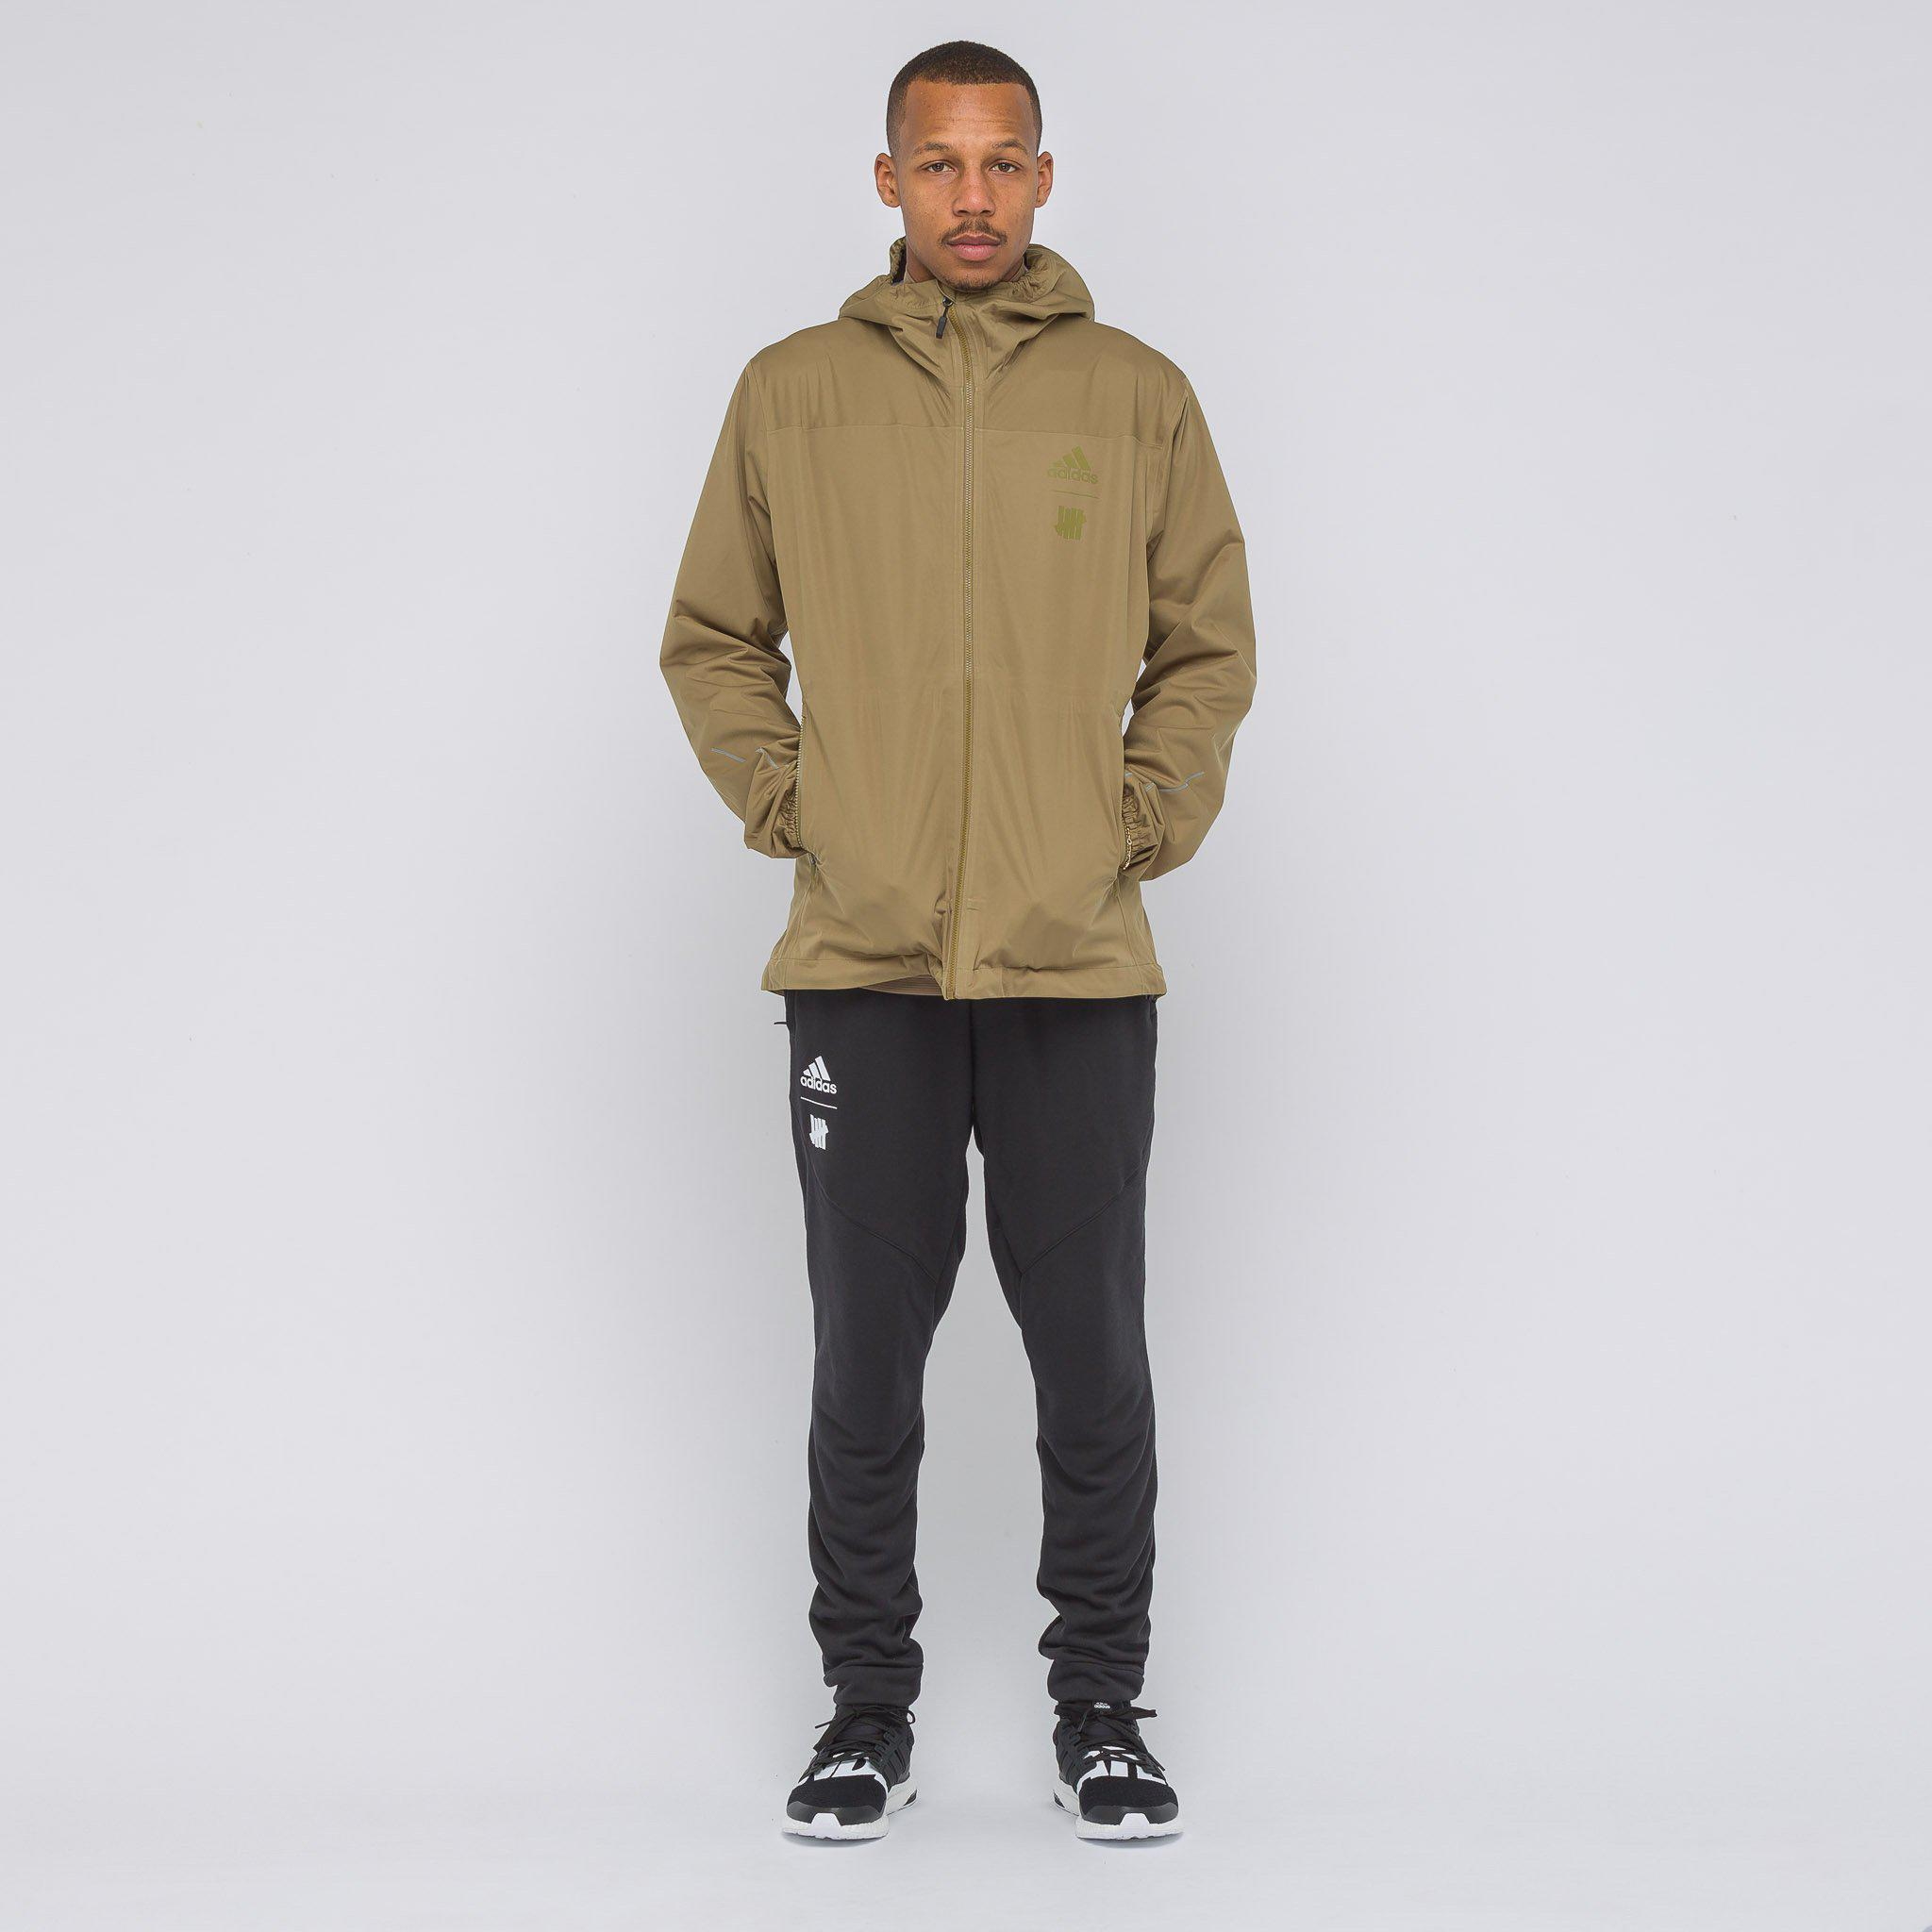 440b6dc43d34 Lyst - adidas X Undefeated 3l Goretex Jacket In Khaki in Natural for Men